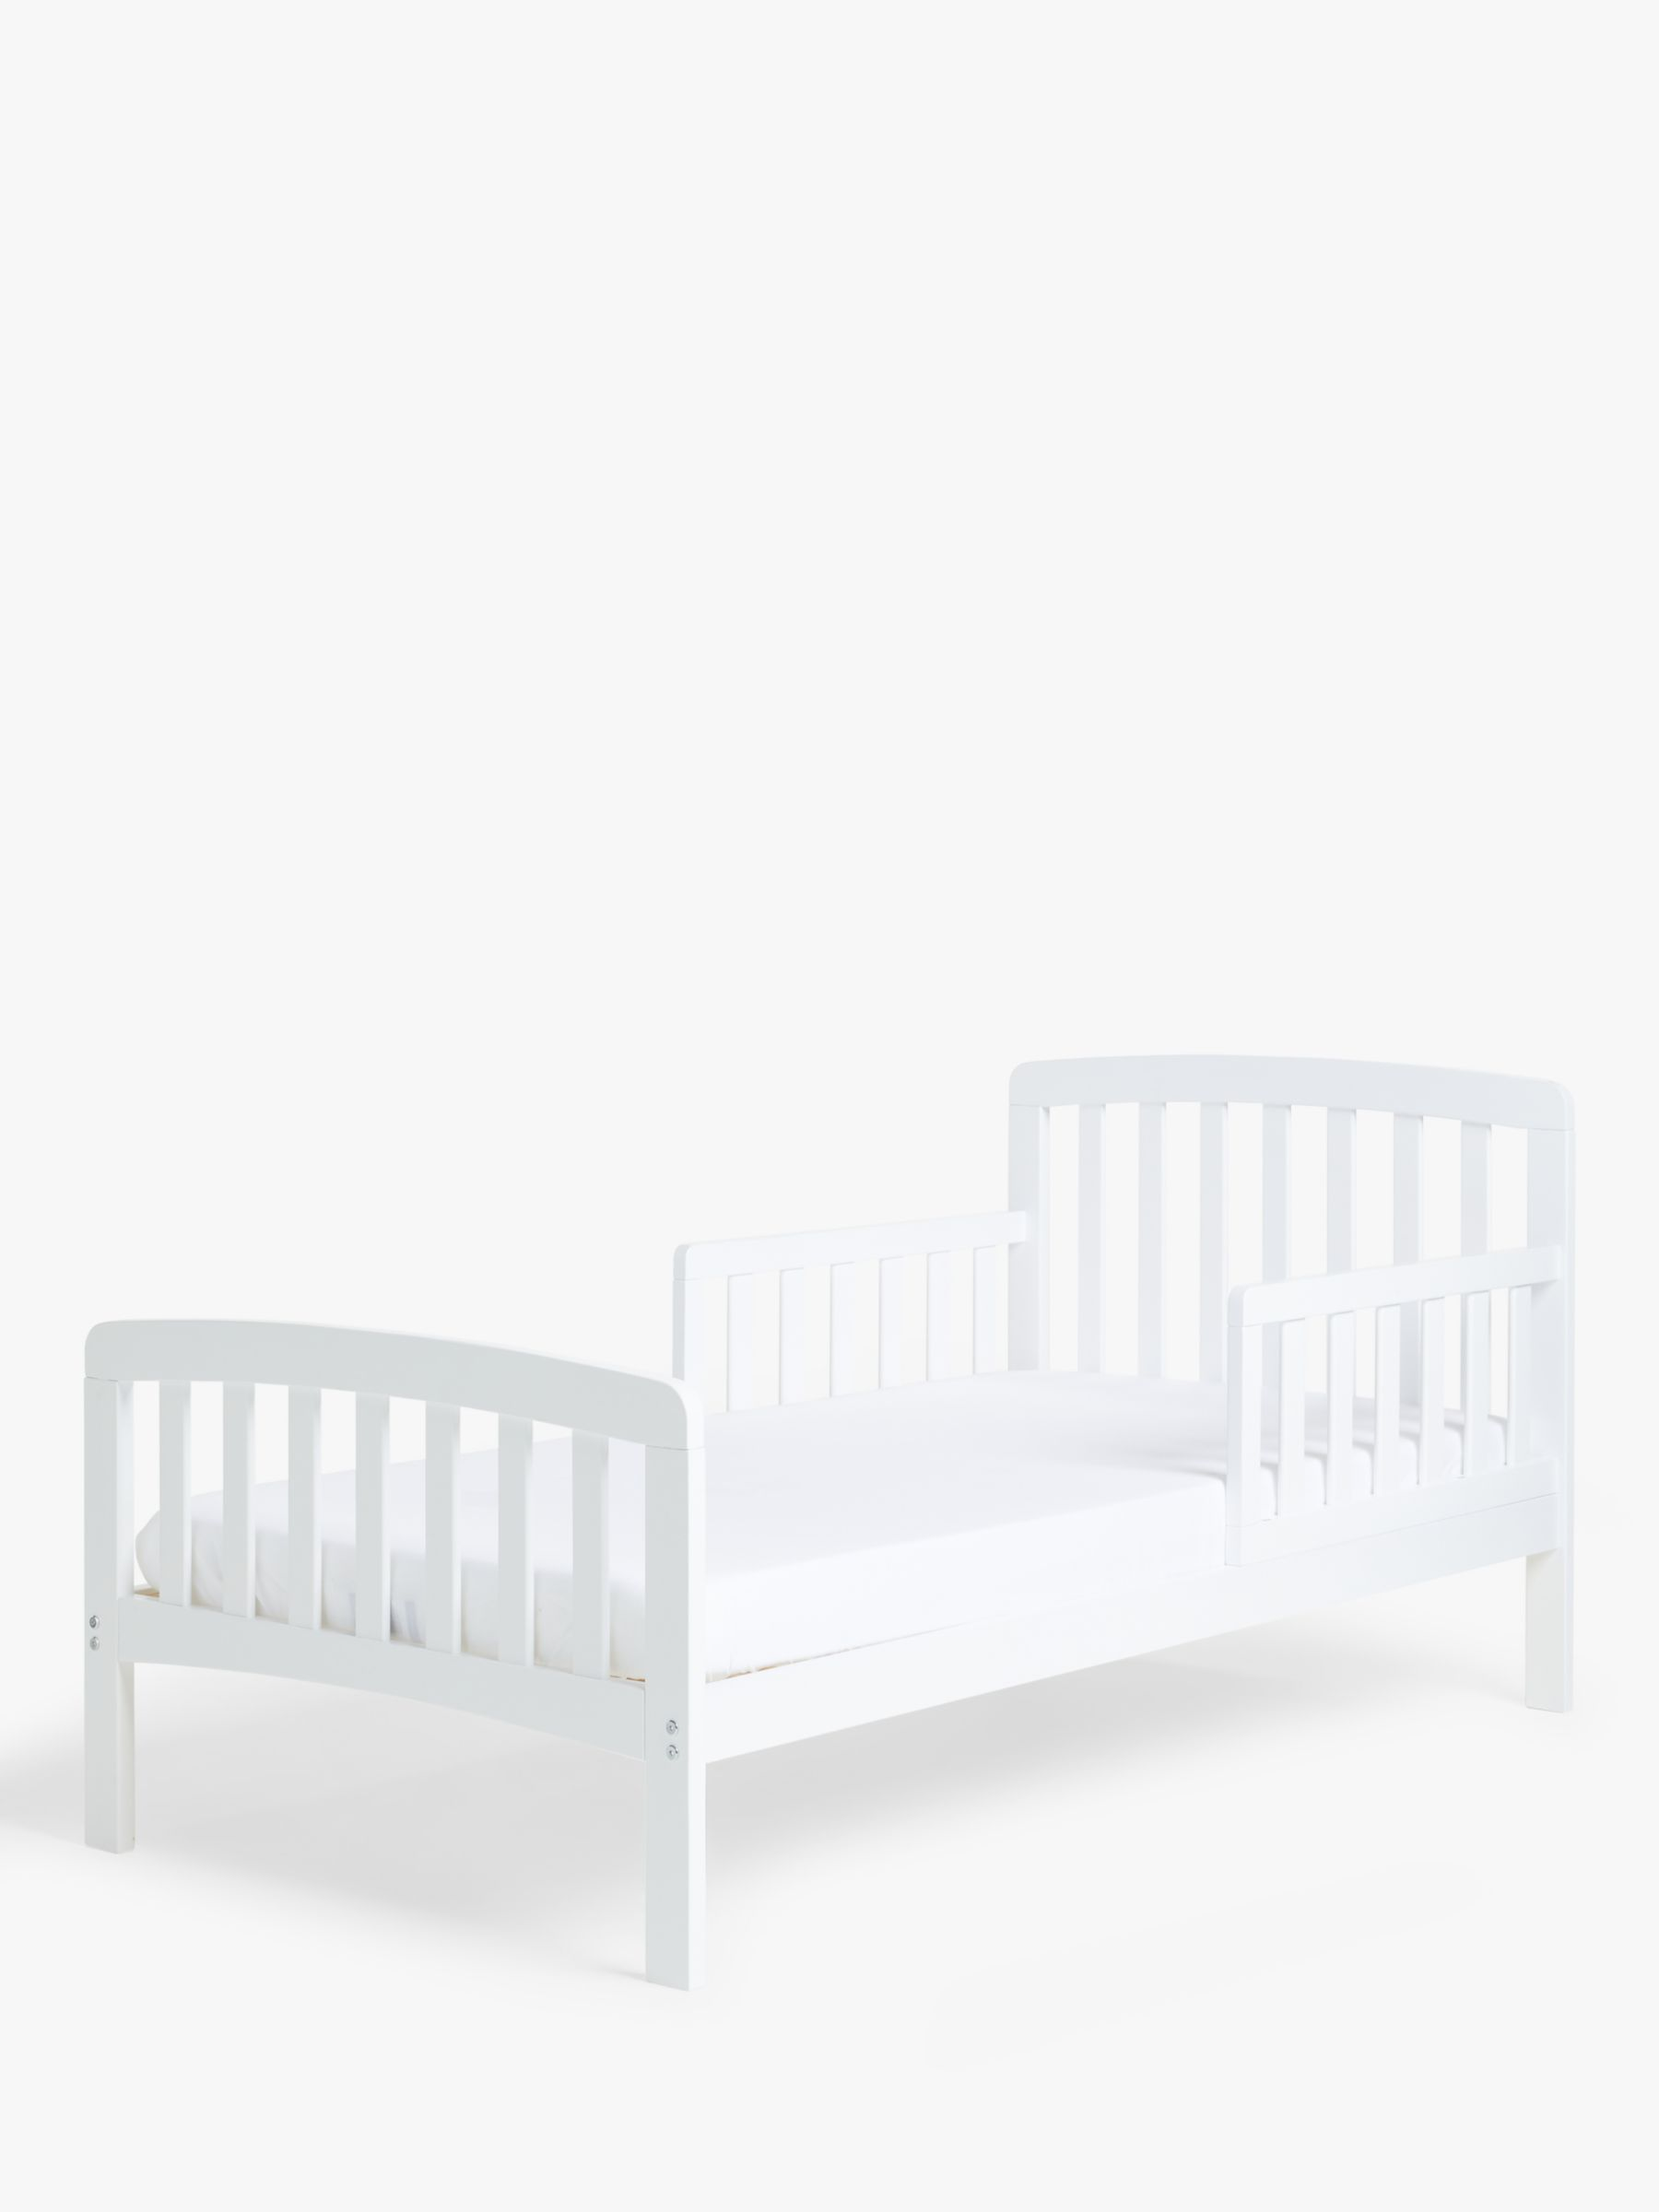 ANYDAY John Lewis & Partners Elementary Toddler Bed, White